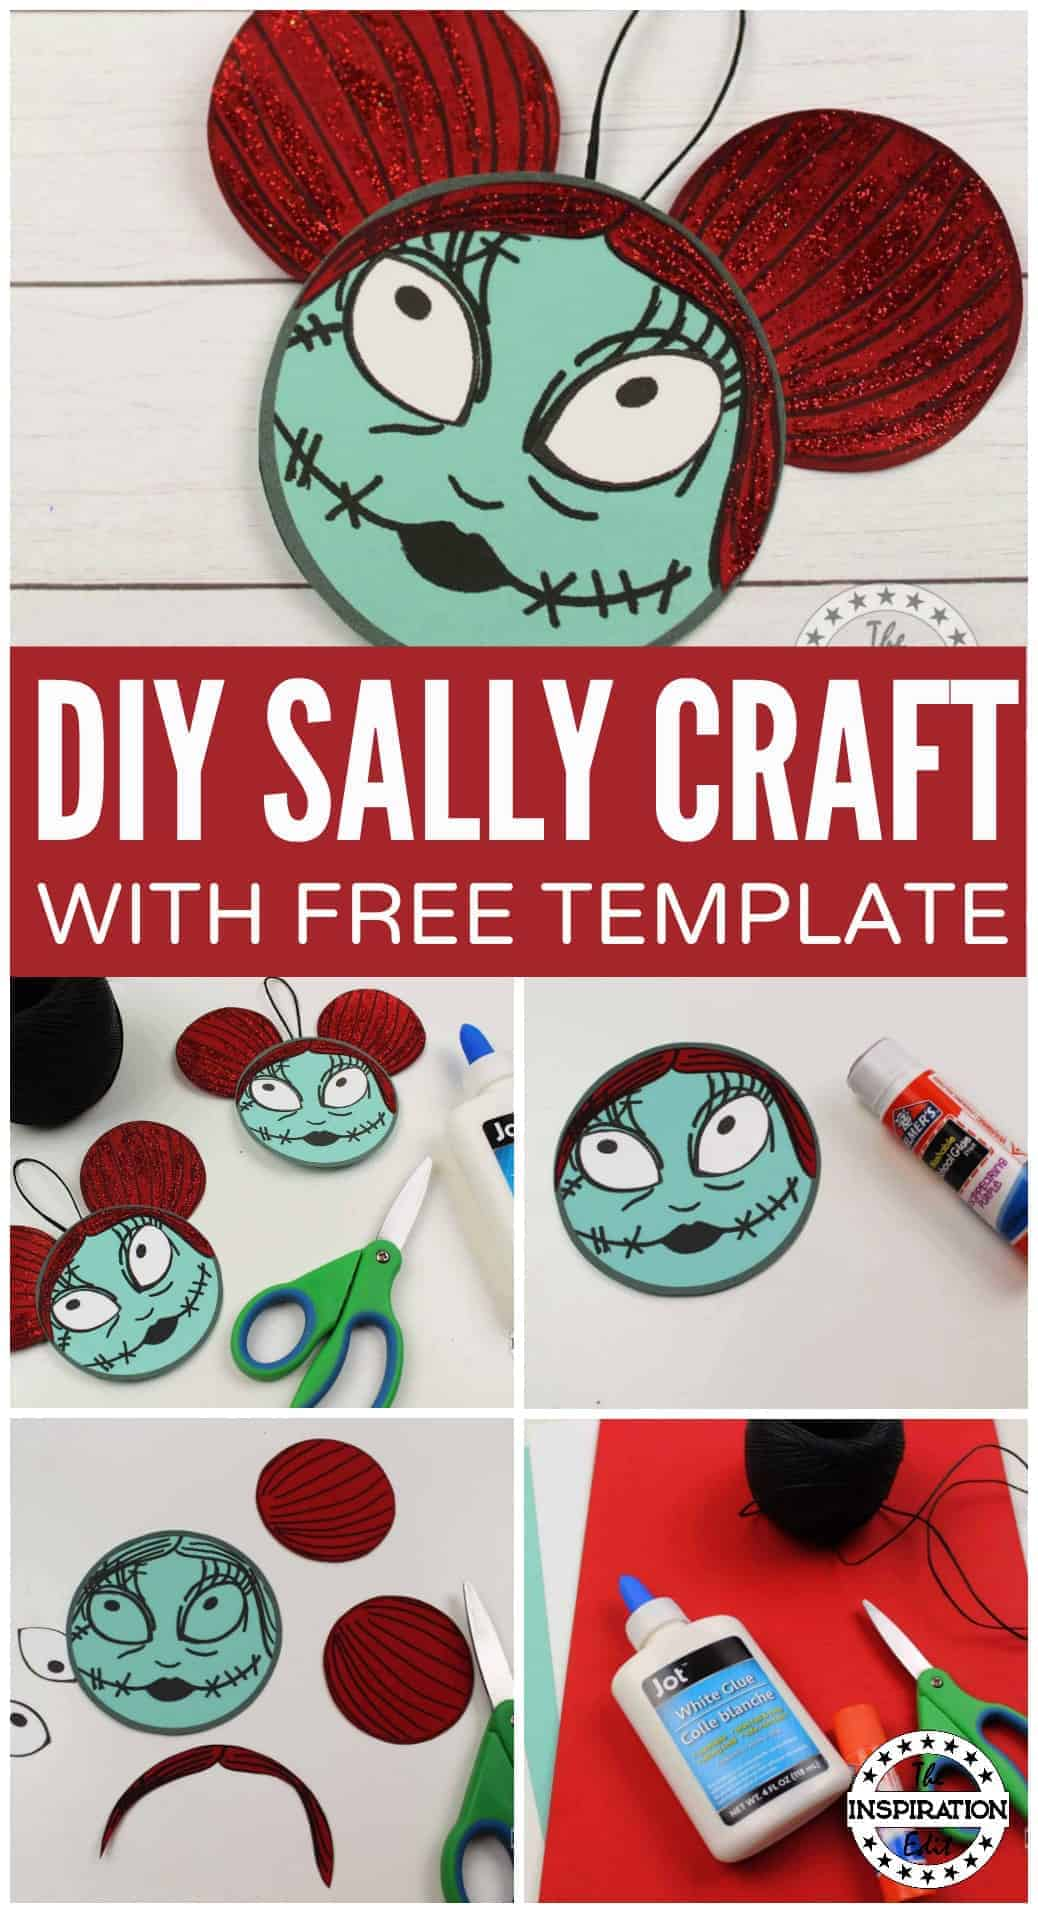 DIY SALLY CRAFT from the disney movie the nightmare before christmas